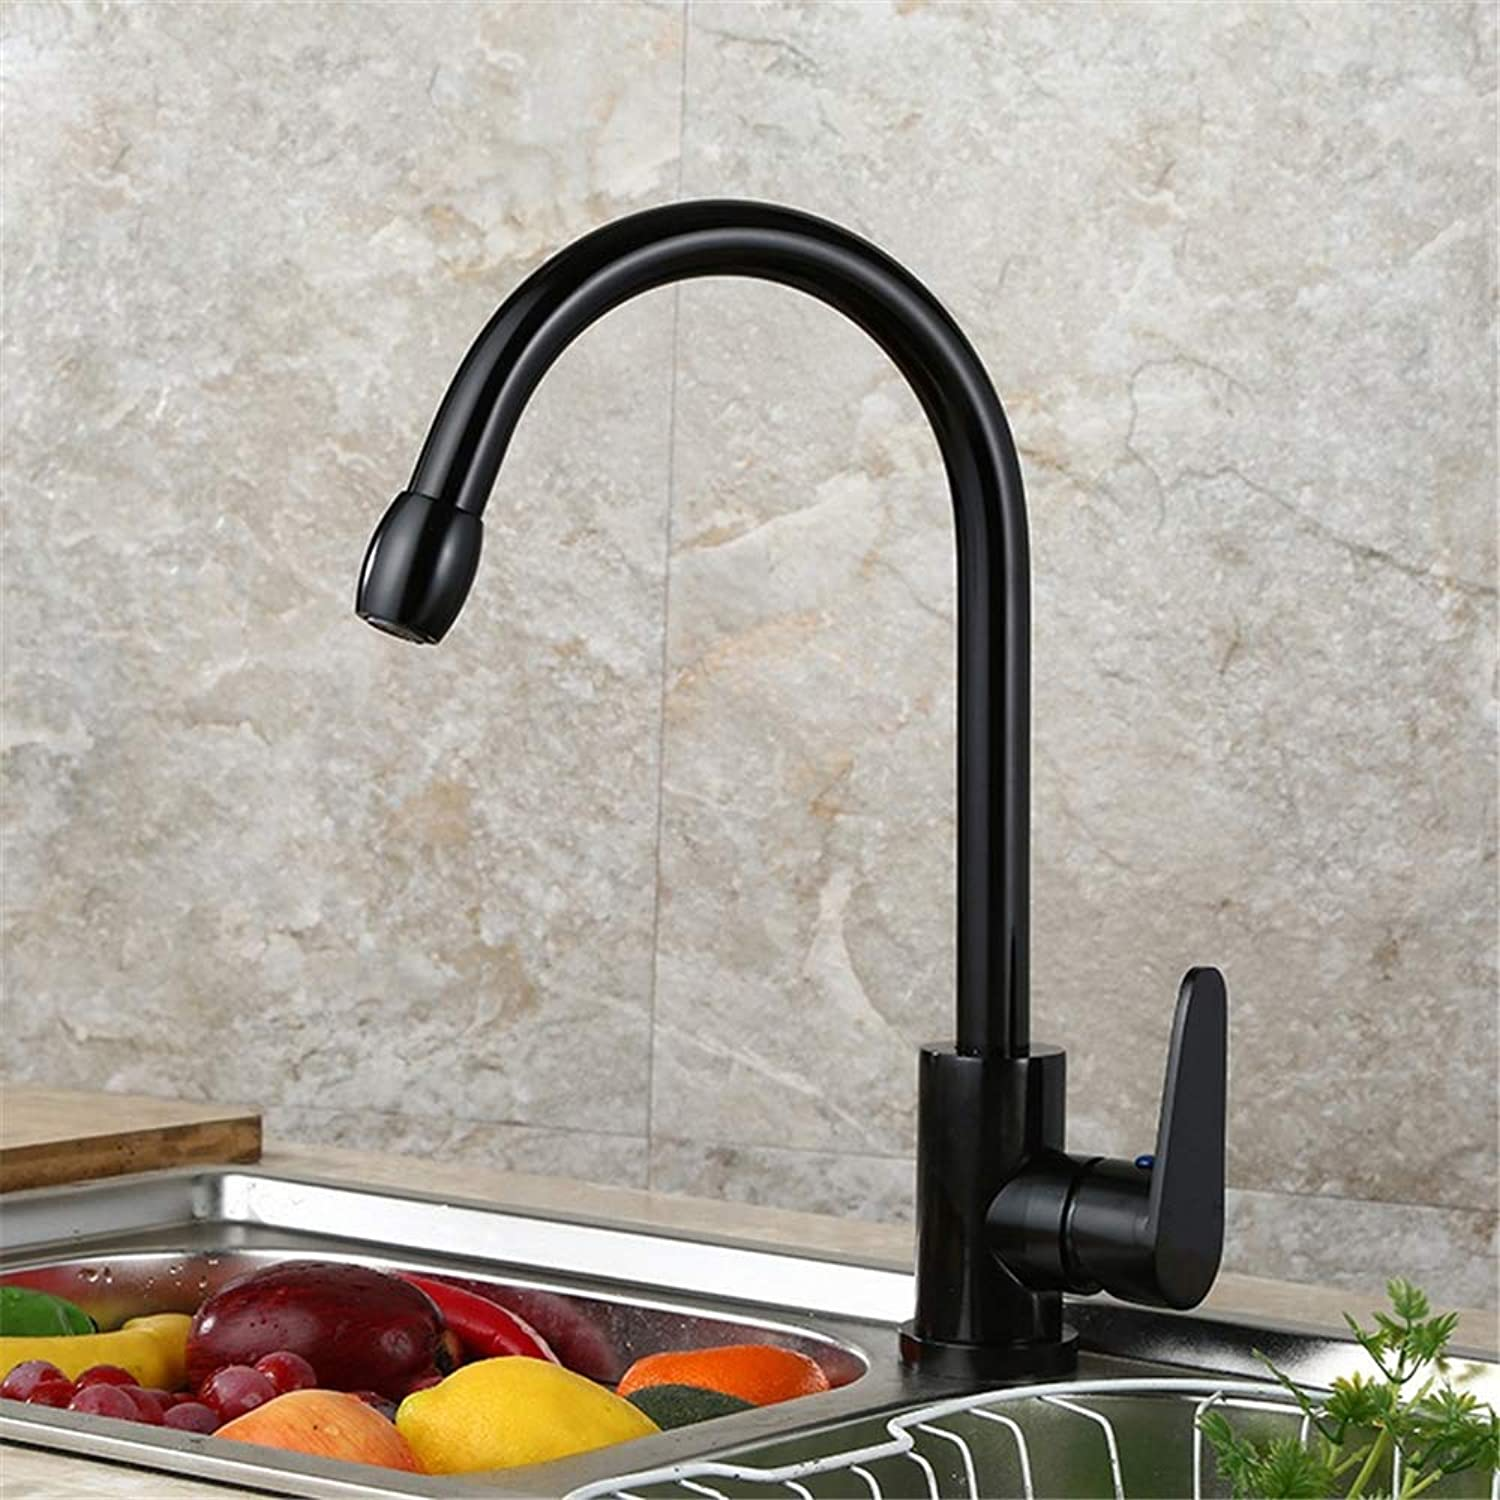 YBHNB Kitchen Basin Taps, Black Fashion Space Aluminum Kitchen Sink Faucet Kitchen Polishing greenical Inssizetion Hot and Cold Mixing Kitchen Faucet